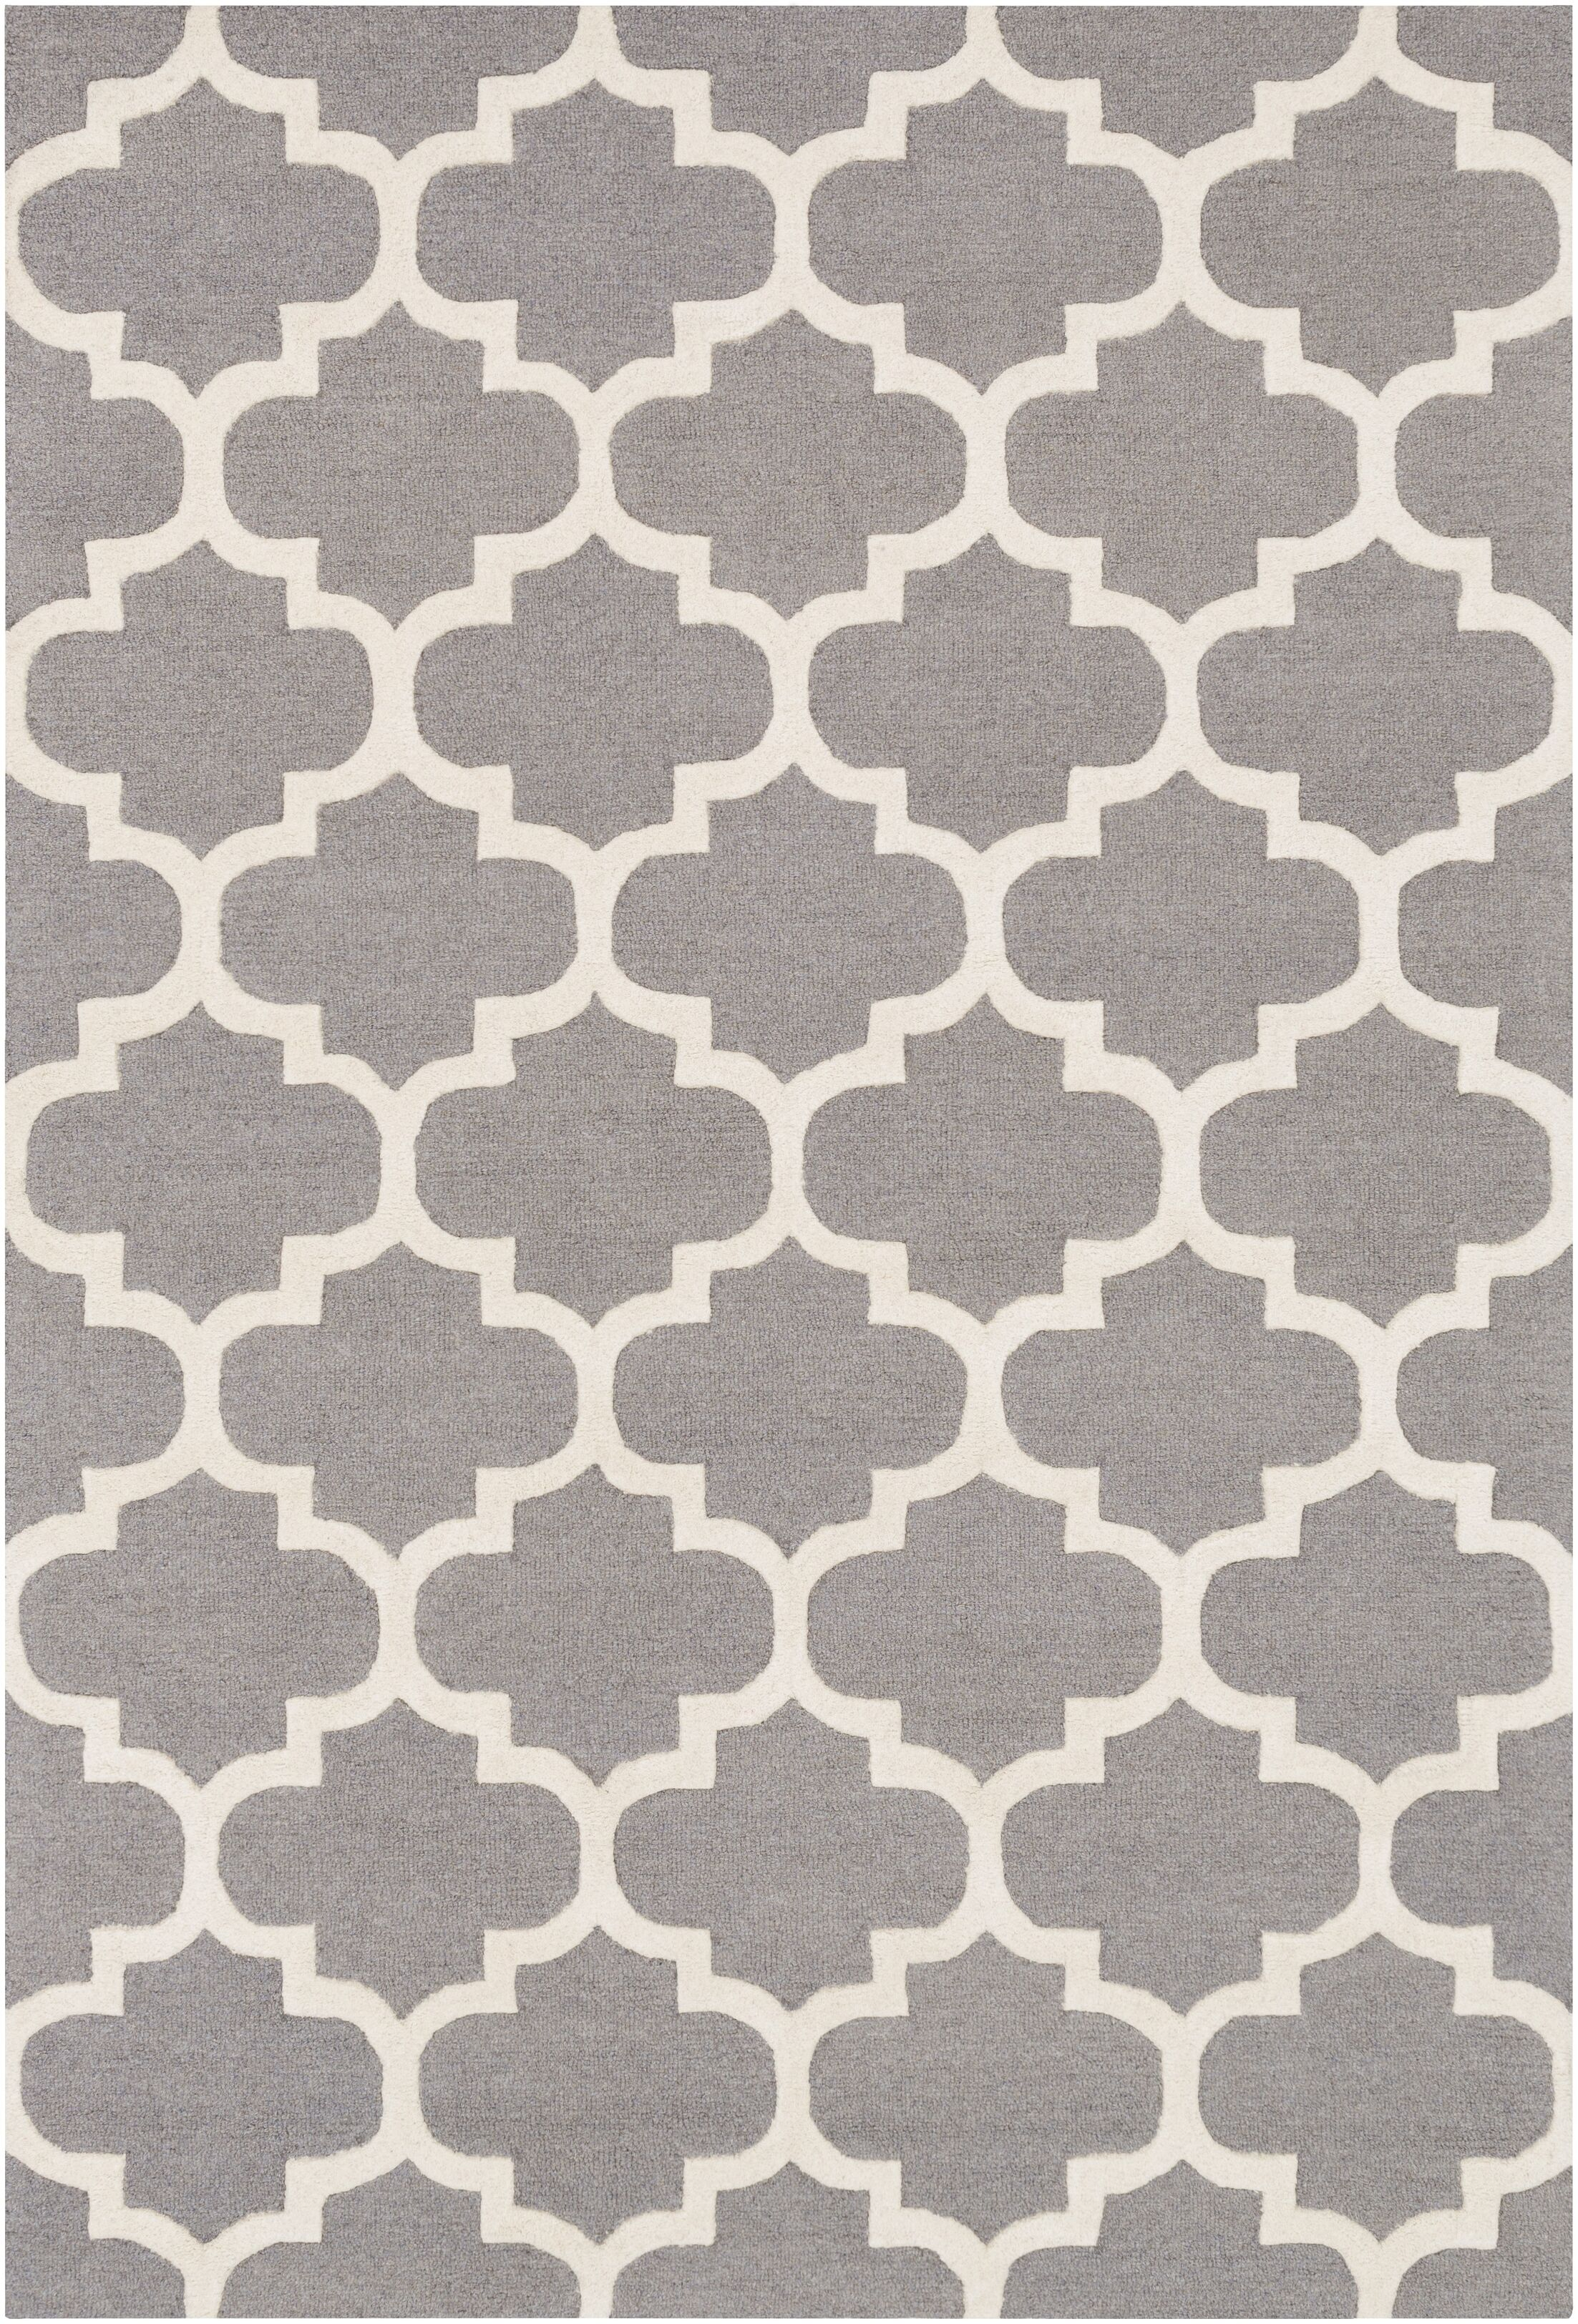 Blaisdell Hand-Woven Gray Area Rug Rug Size: Rectangle 4' x 6'